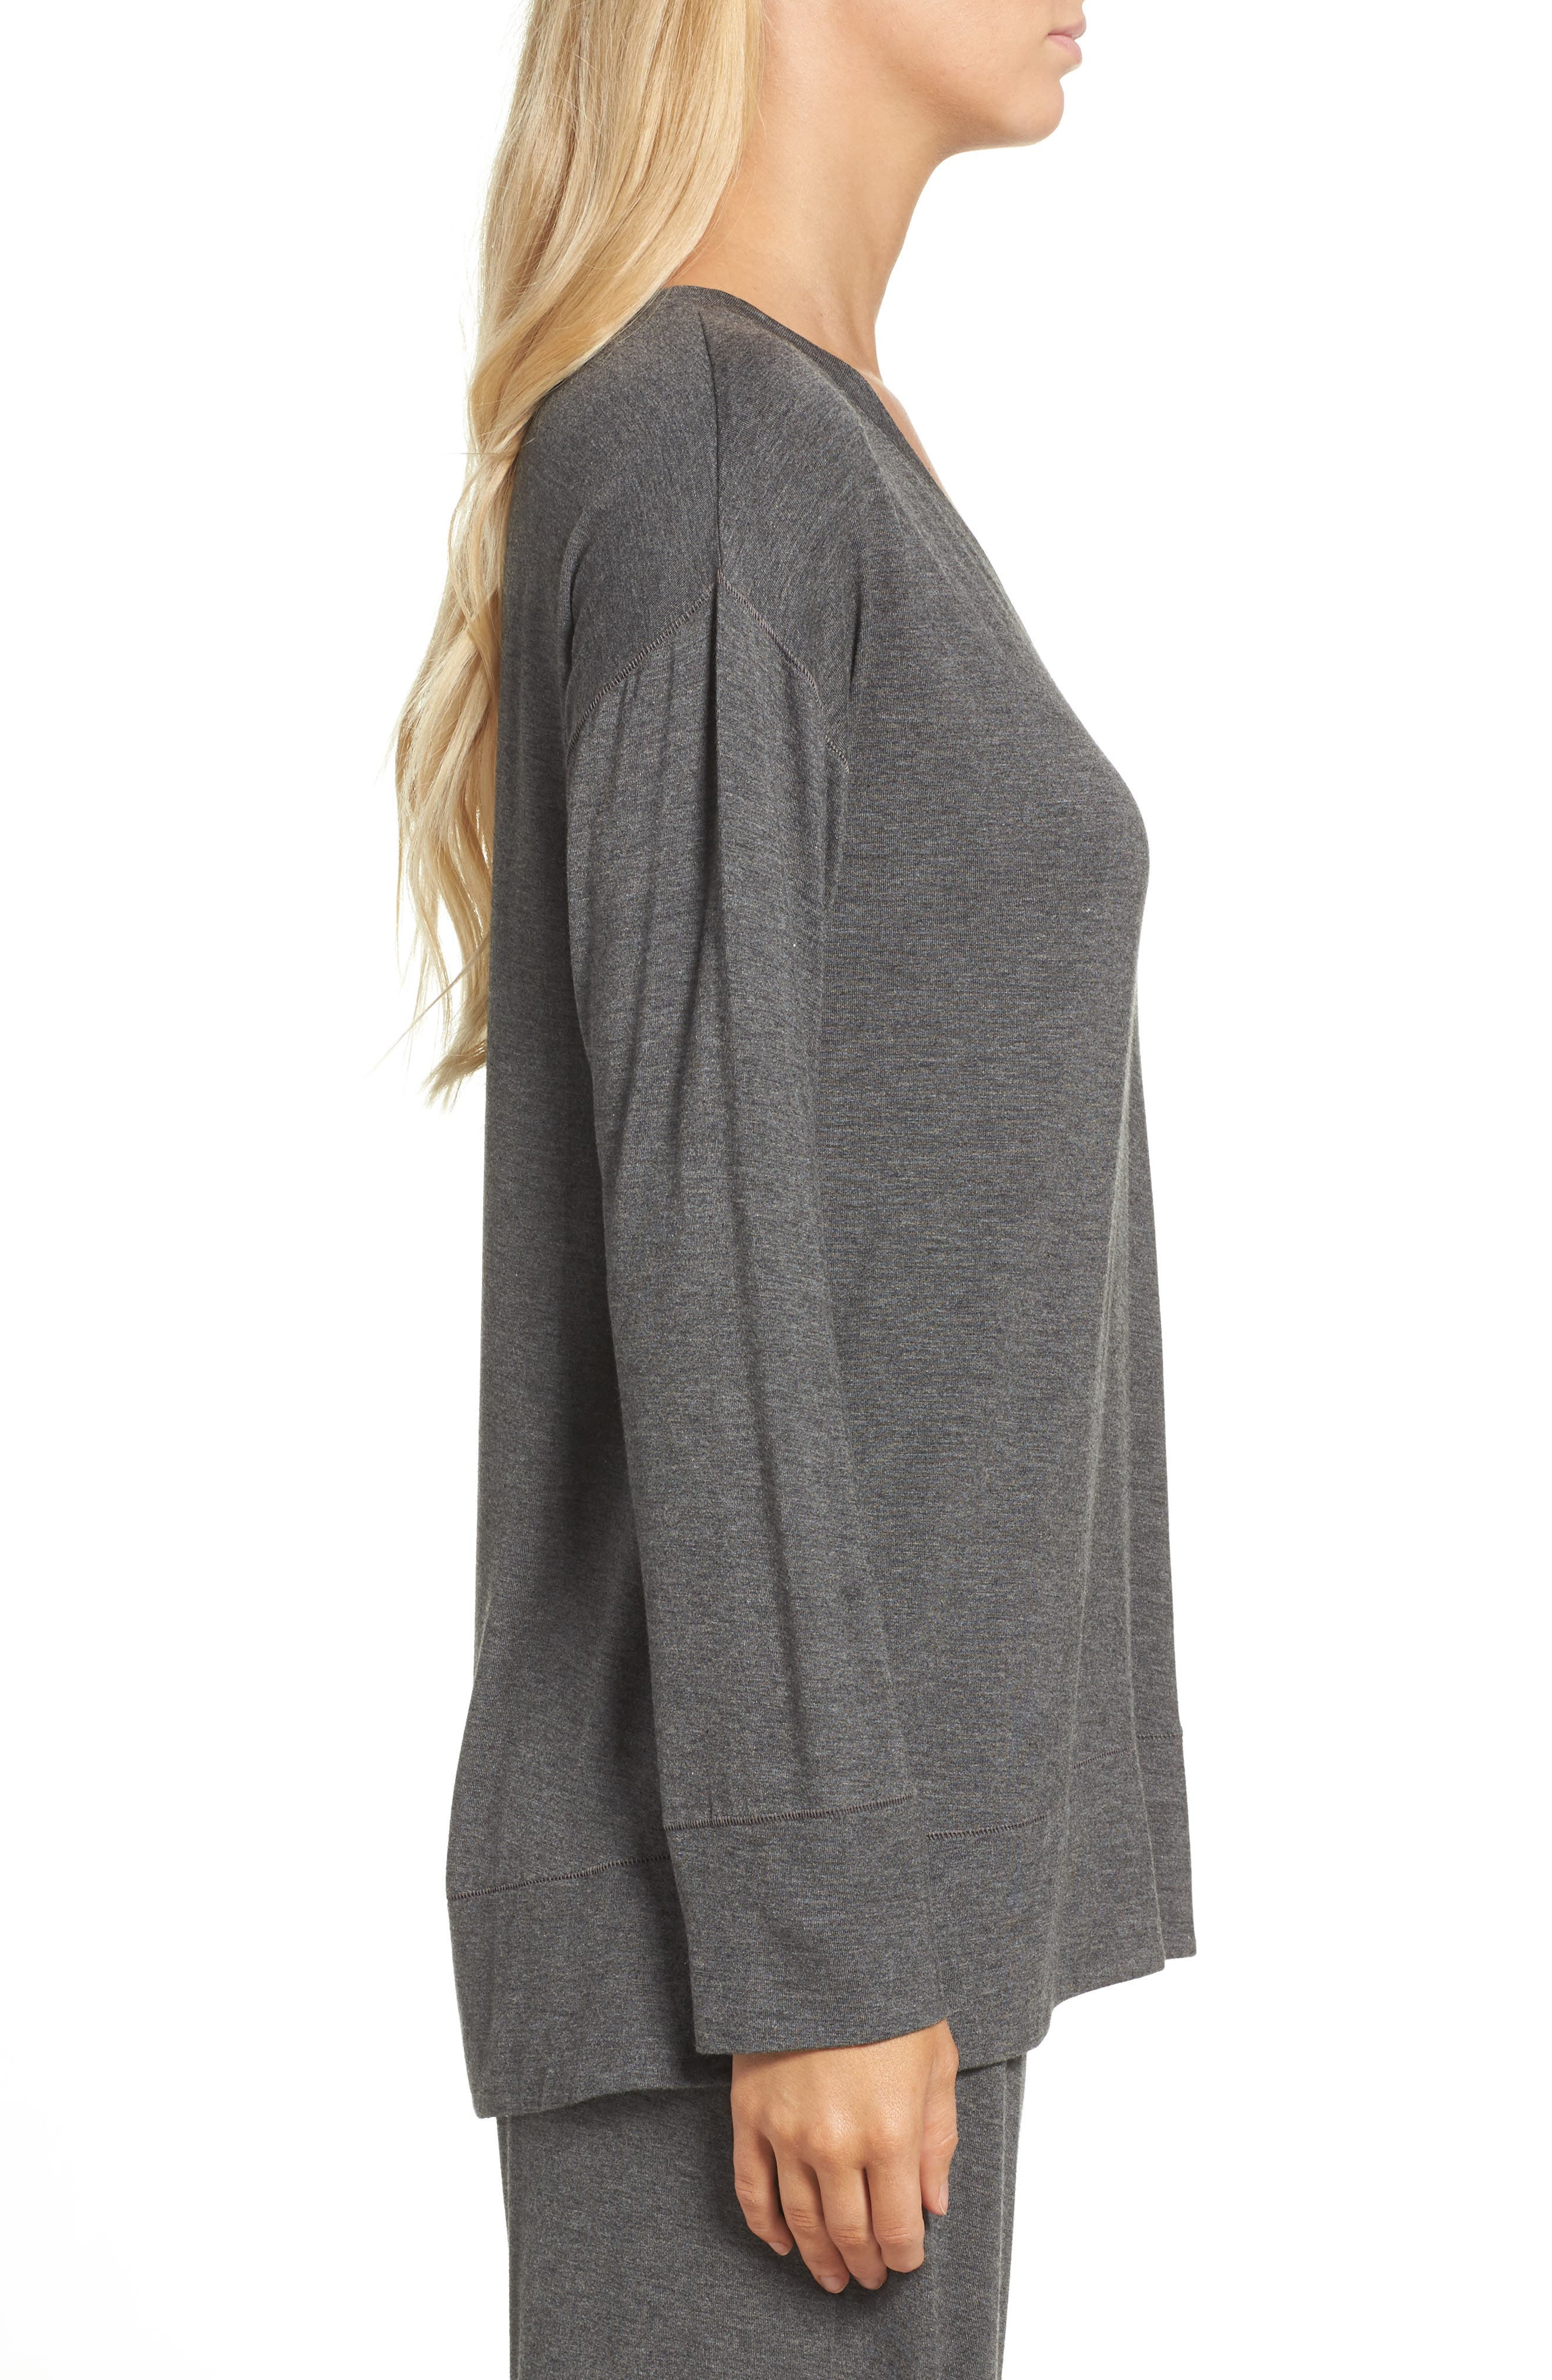 Lounge Top,                             Alternate thumbnail 3, color,                             Charcoal Heather